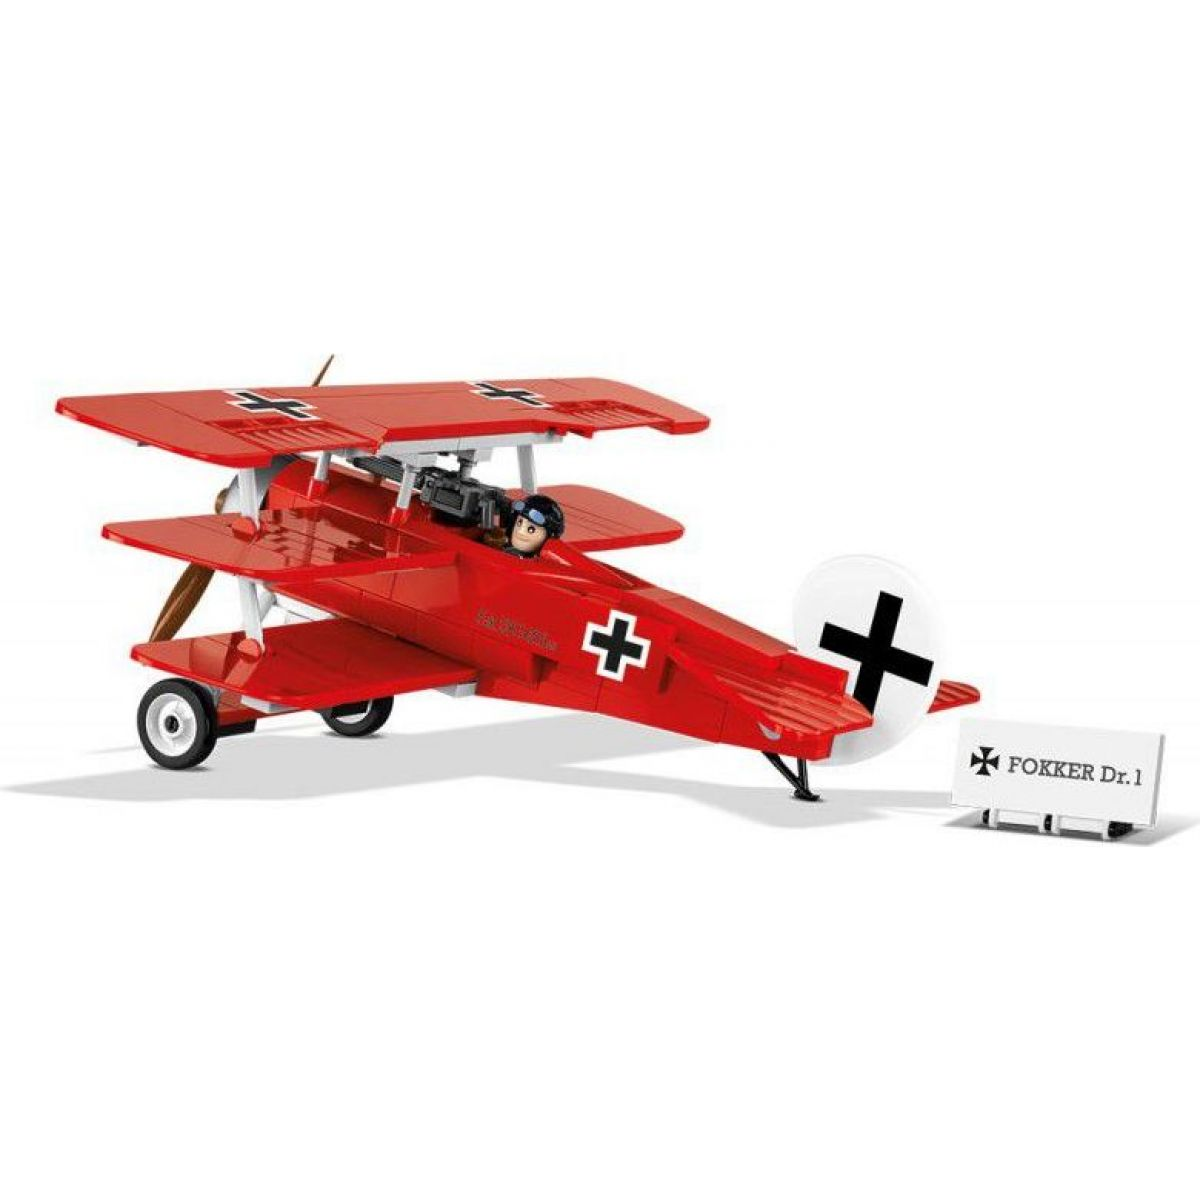 Cobi 2974 Great War Fokker Dr. 1 RED BARON